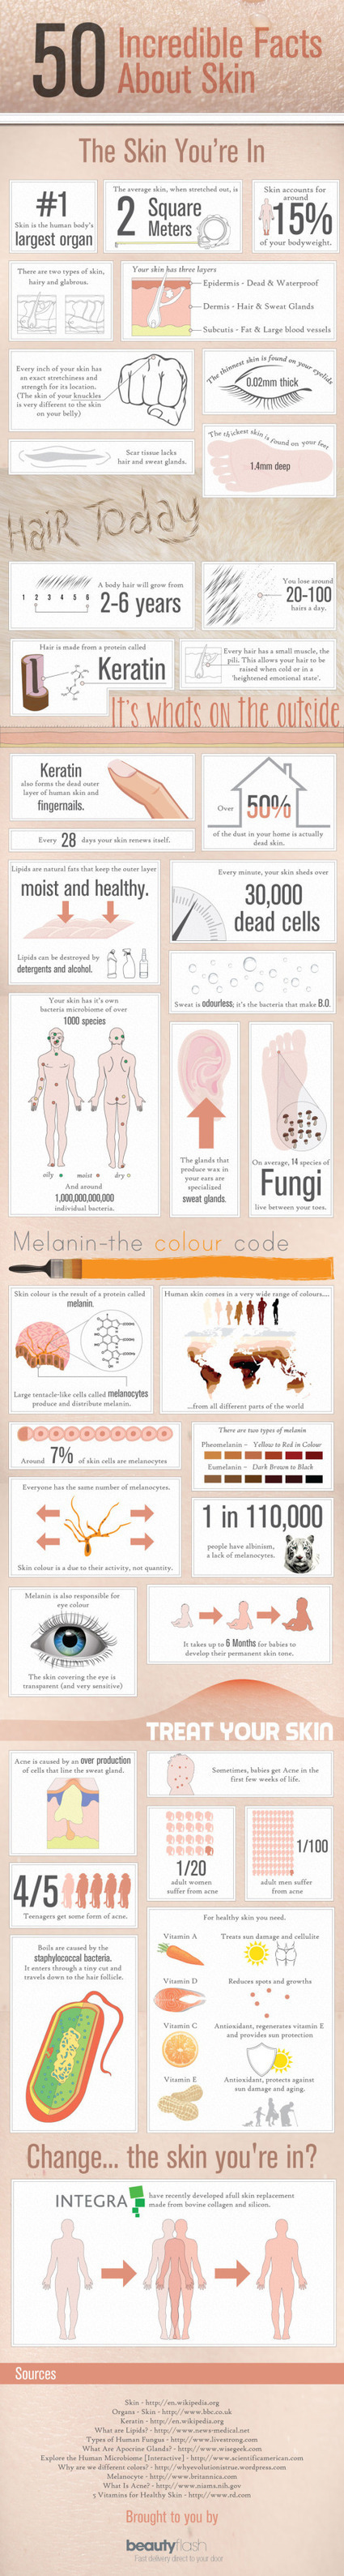 50 Incredible Facts AboutSkin - Blog About Infographics and Data Visualization - Cool Infographics | Infographics ideas for Education | Scoop.it